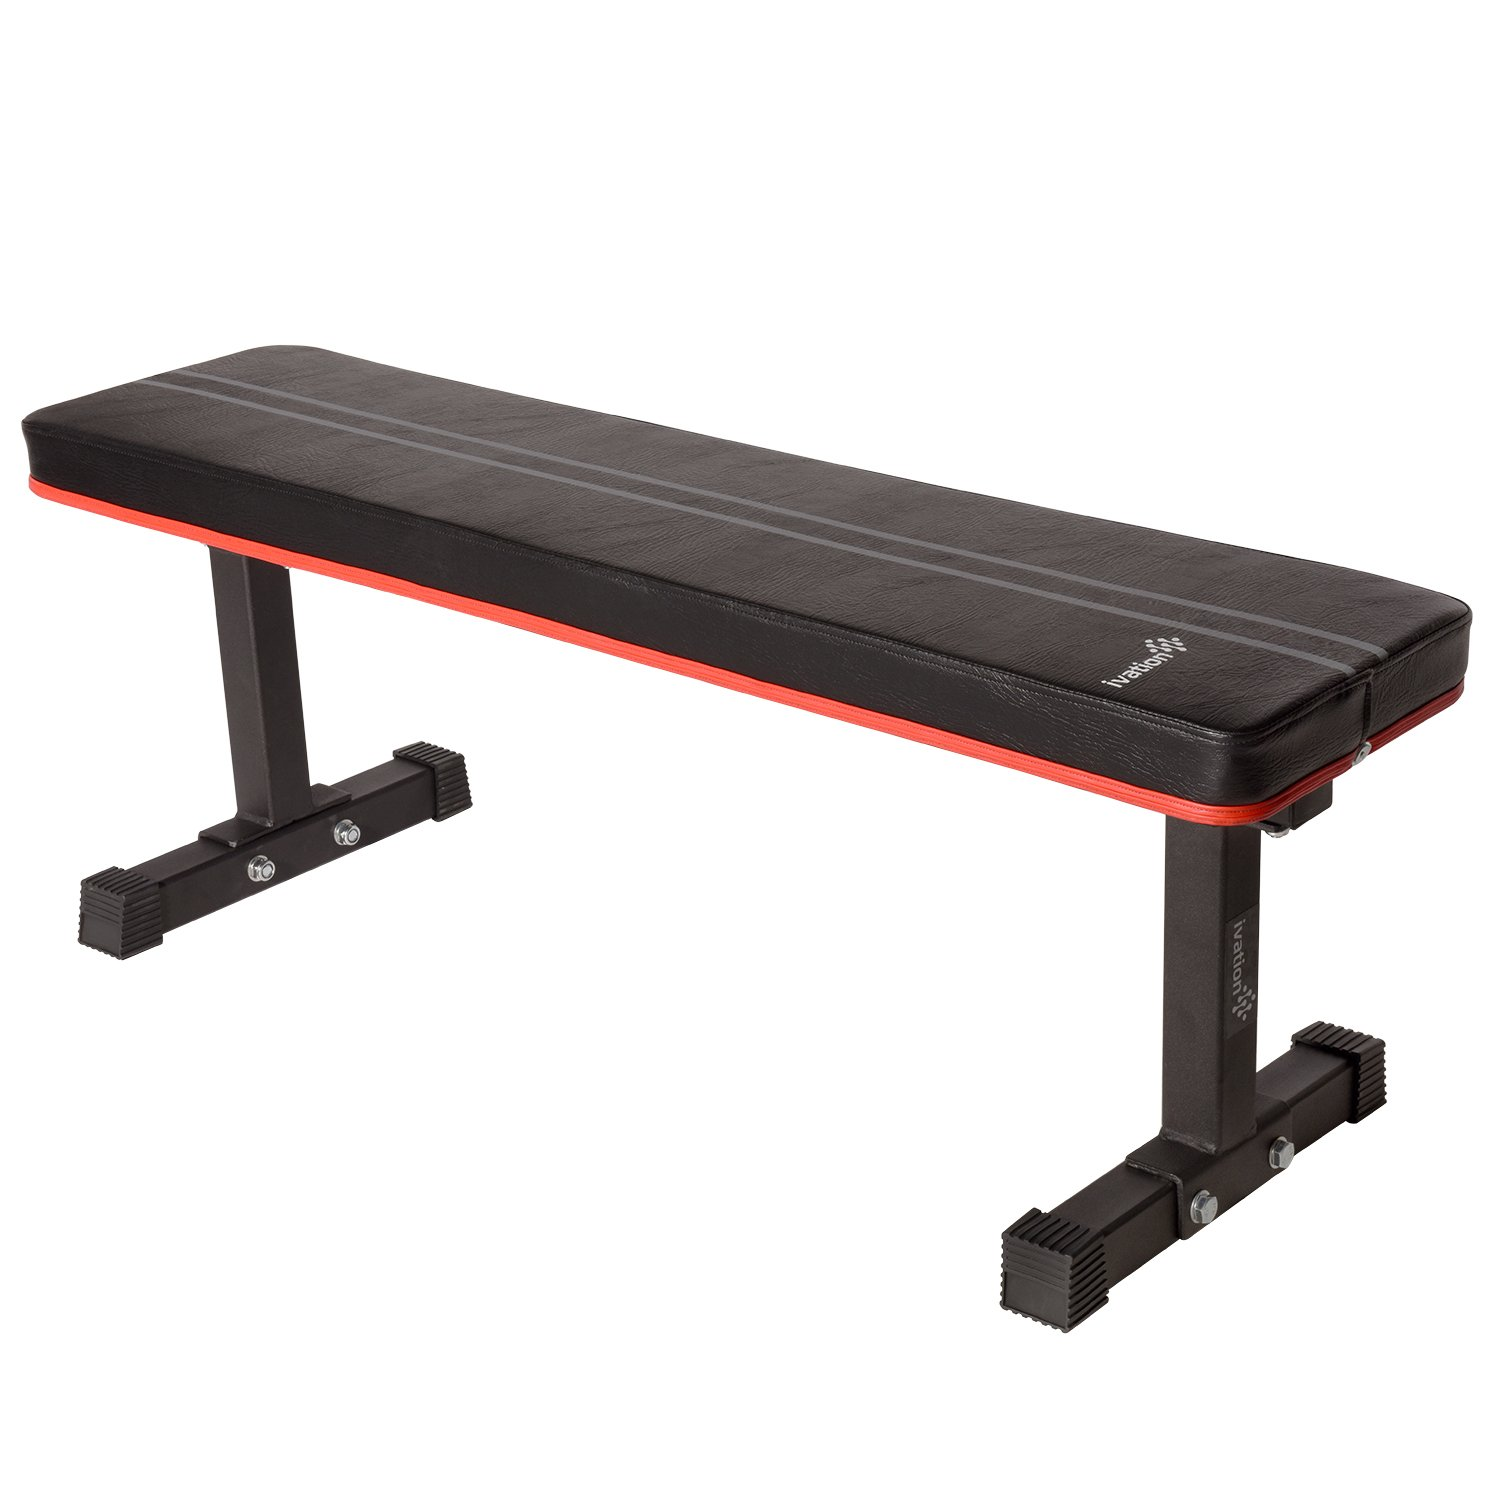 1,000-Lb.-Rated Flat Weight Bench for Weight Lifting – Premium, Heavy-Duty Design Ensures Stability & Proper Back Support